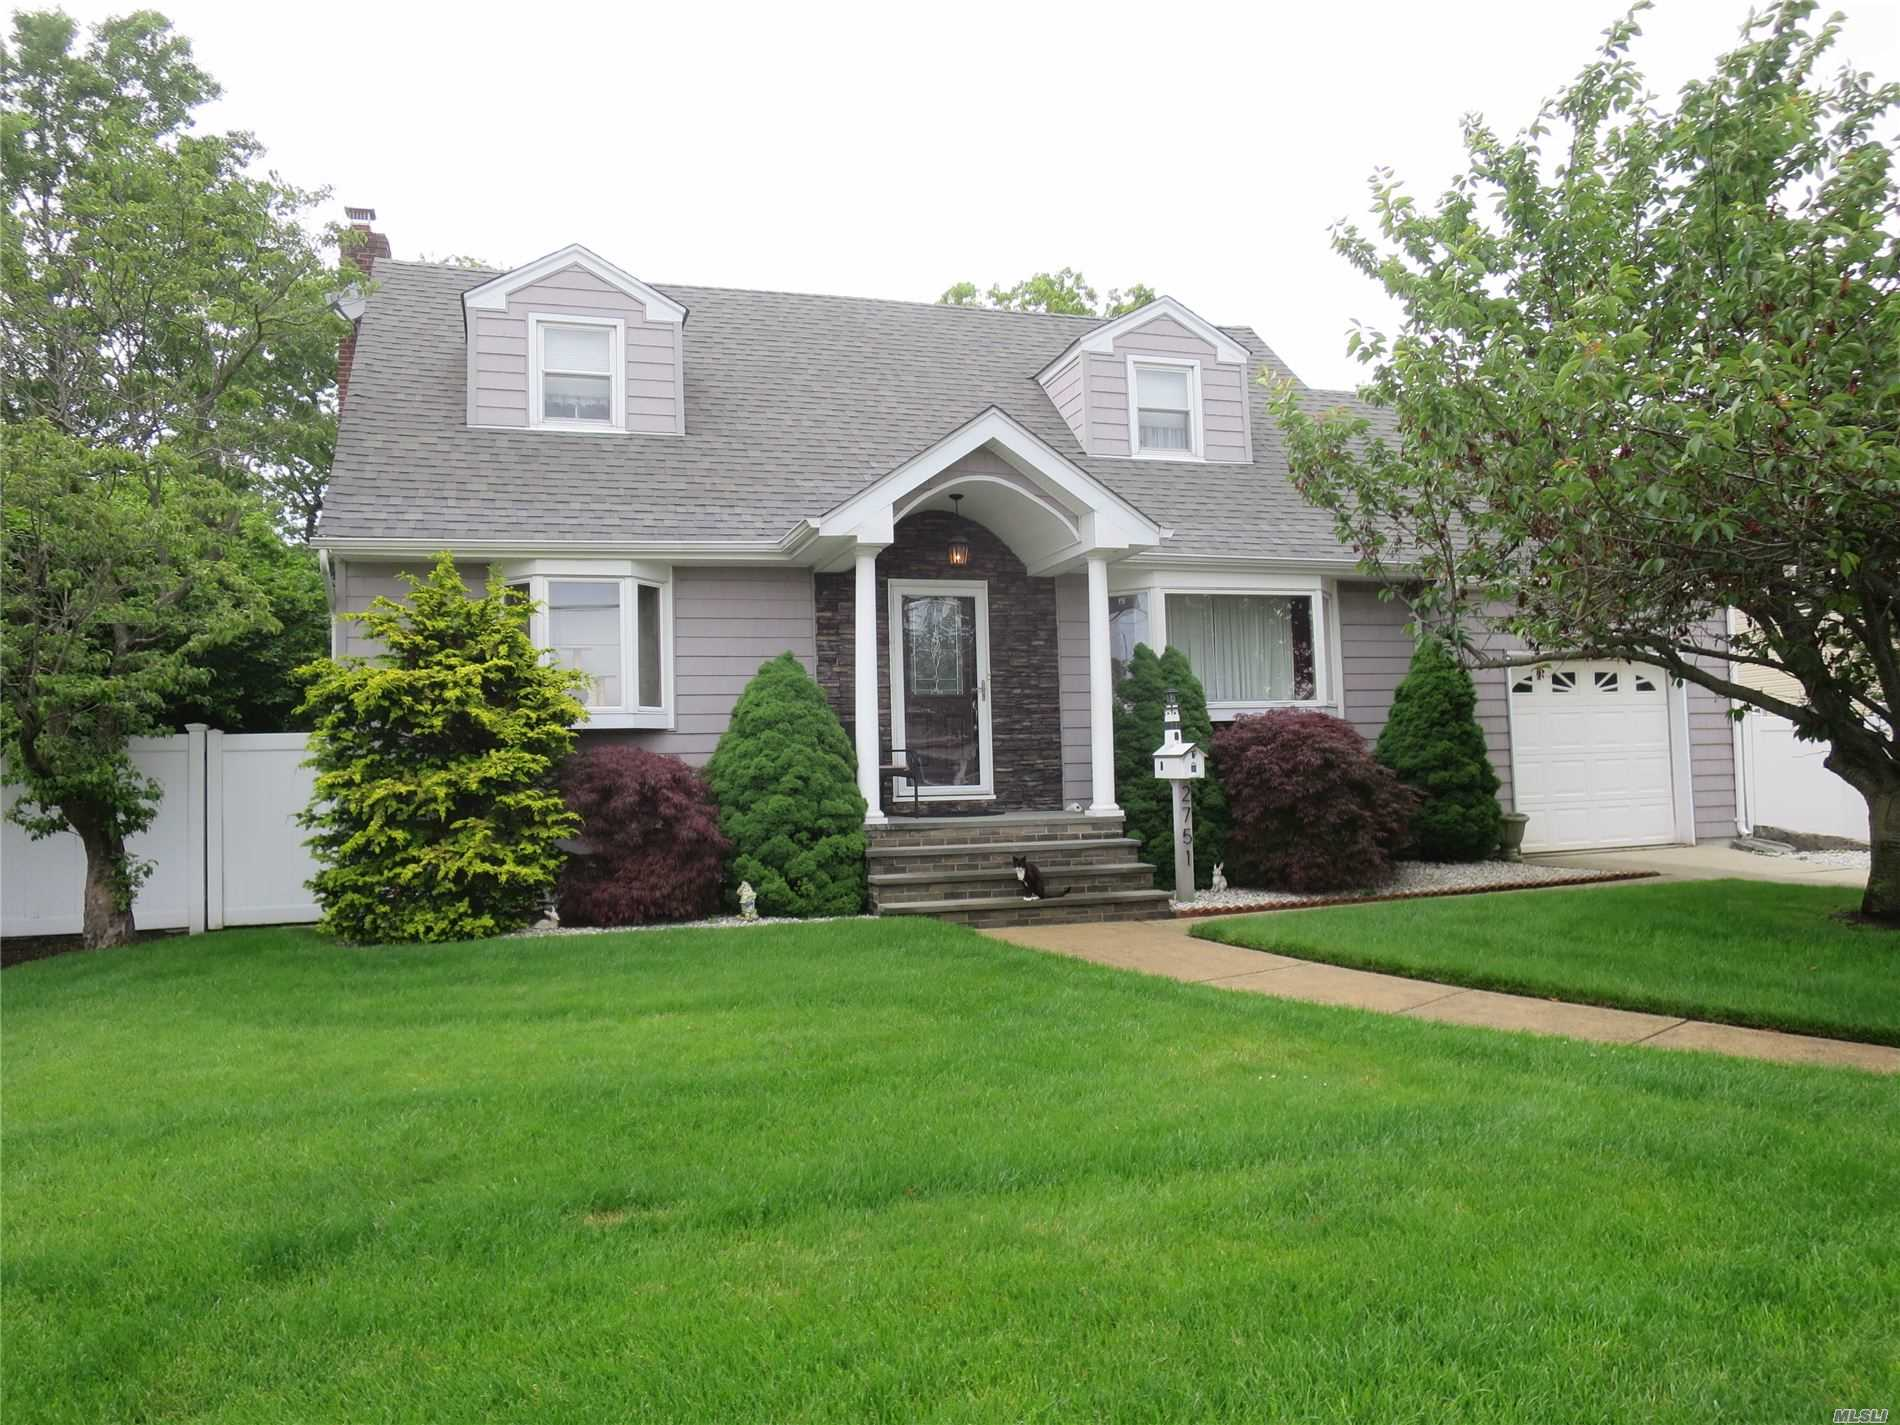 Listing in Bellmore, NY